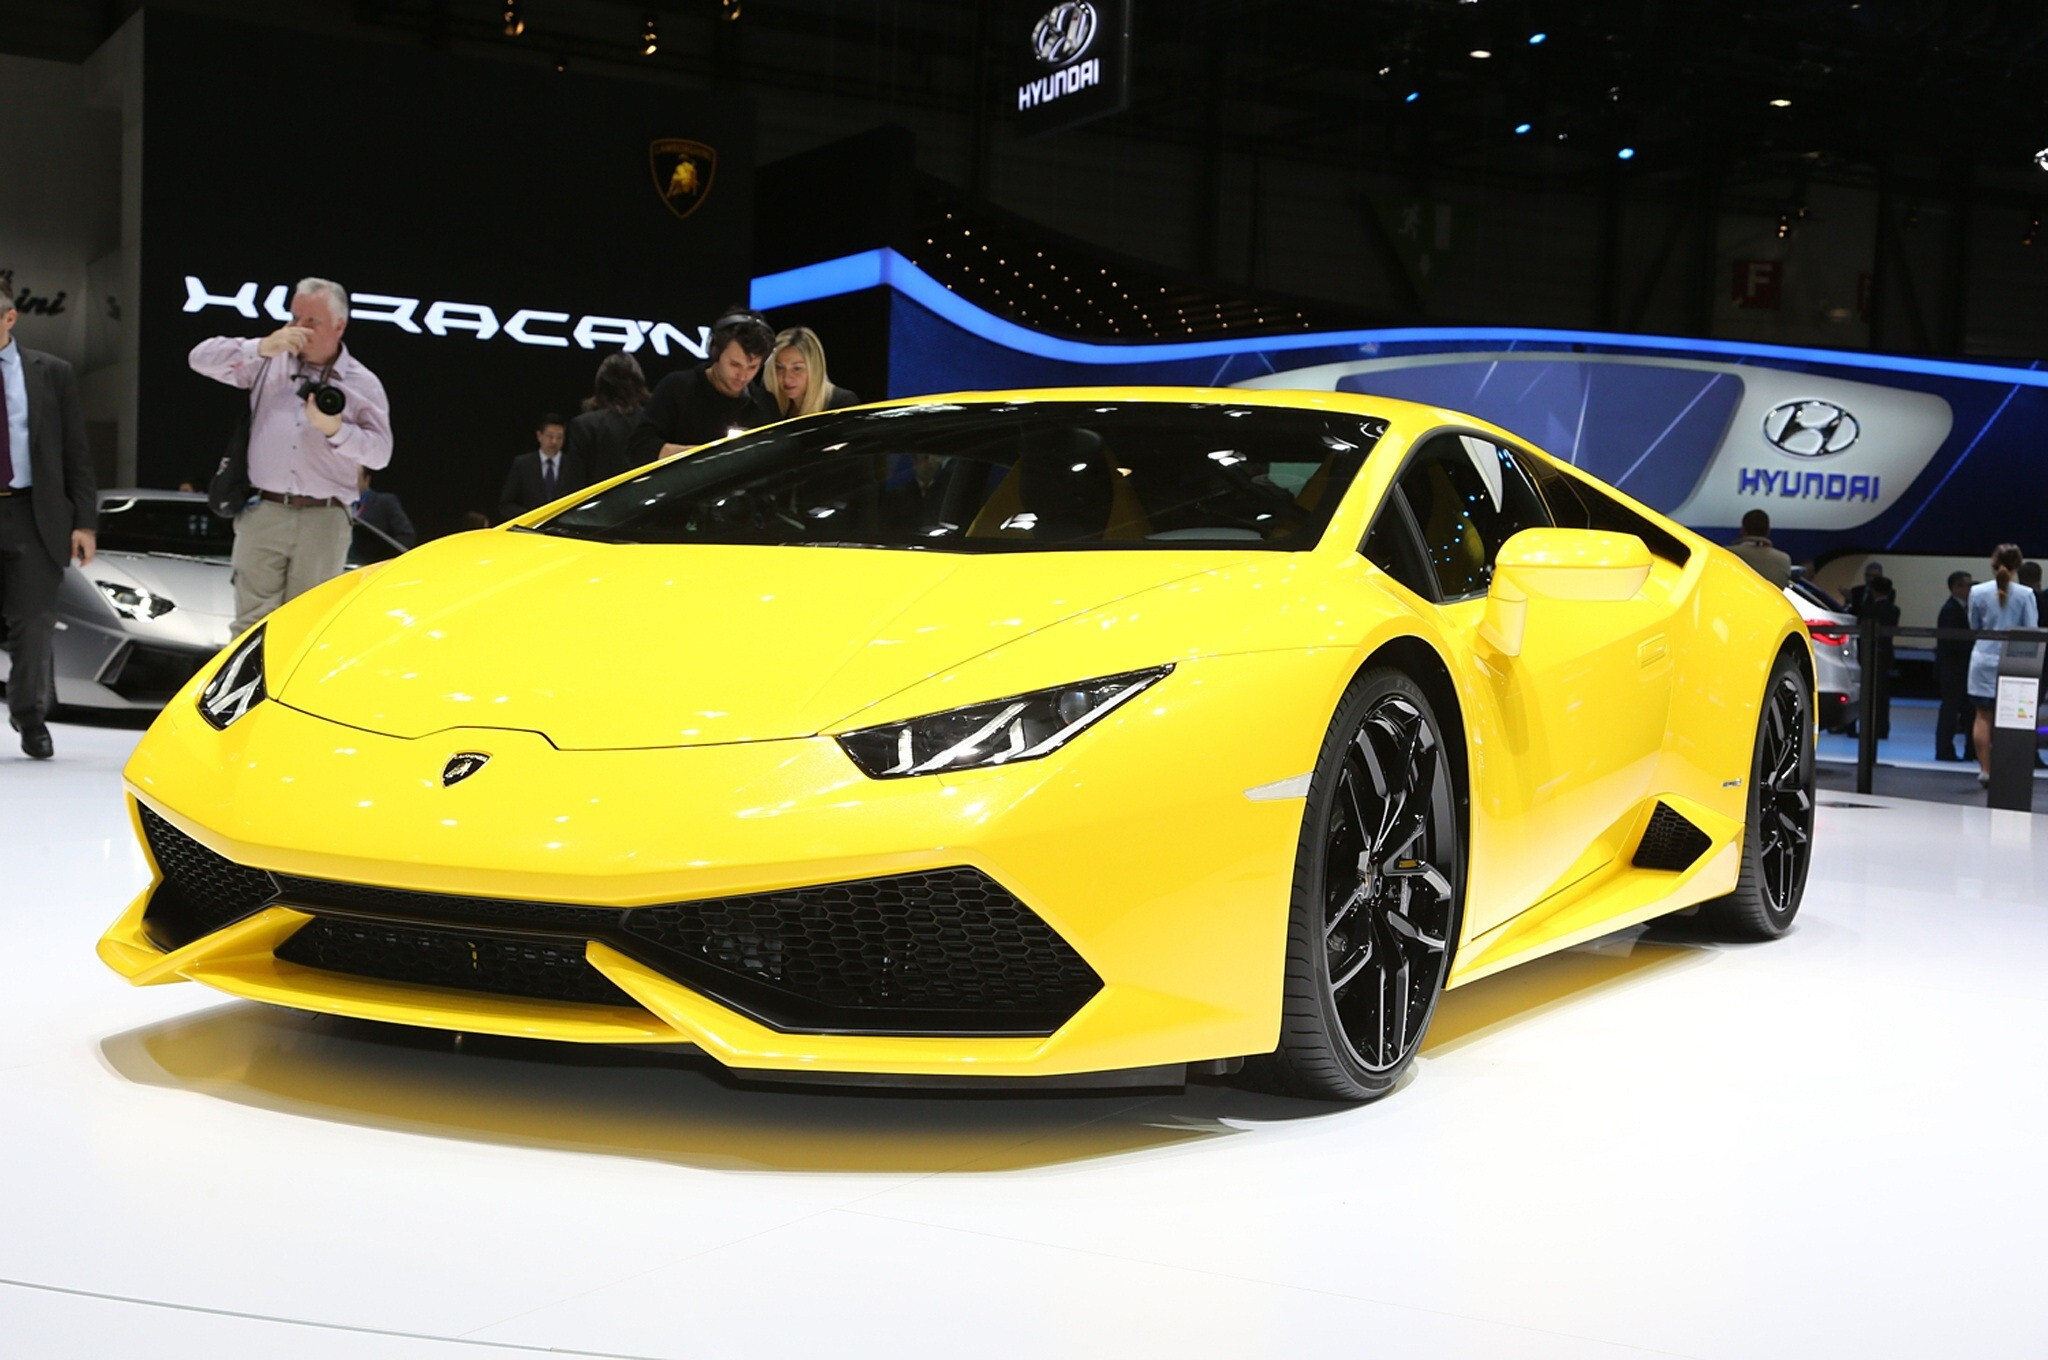 lamborghini downloads 2128 tags lamborghini huracan cars luxury views